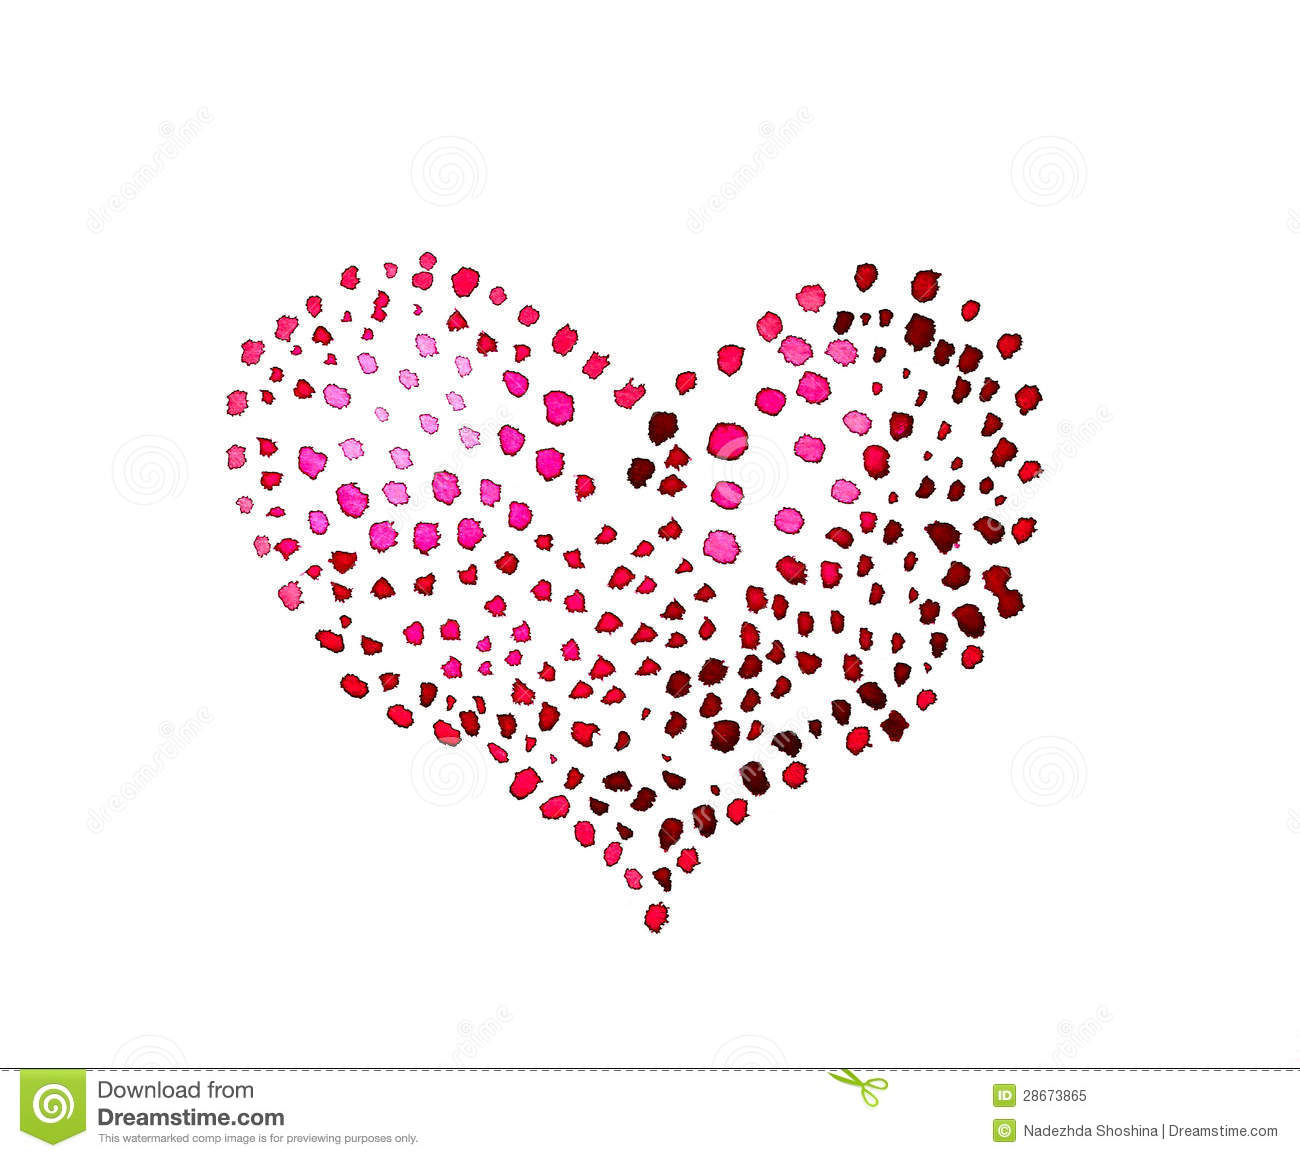 Spotted Heart Royalty Free Stock Photo   Image  28673865